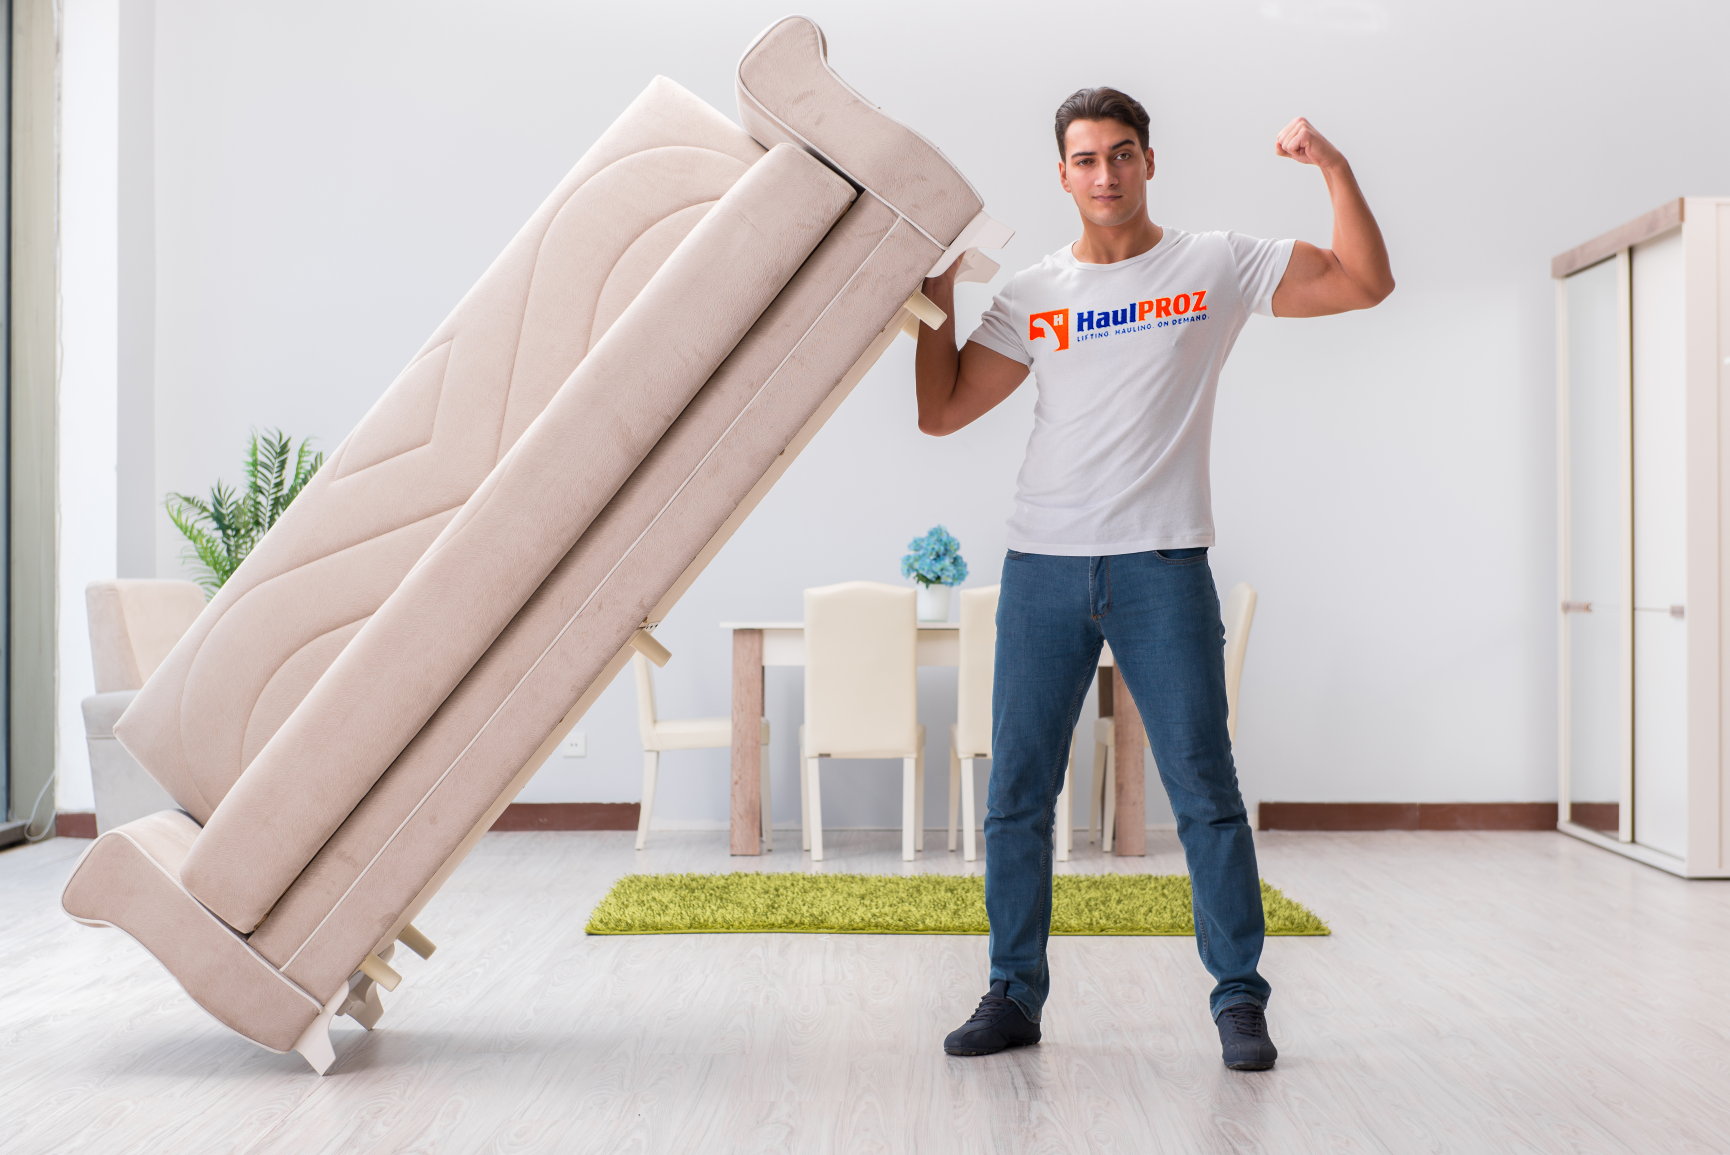 Popularity increases as people find a one-stop junk removal partner in HaulPROZ 1